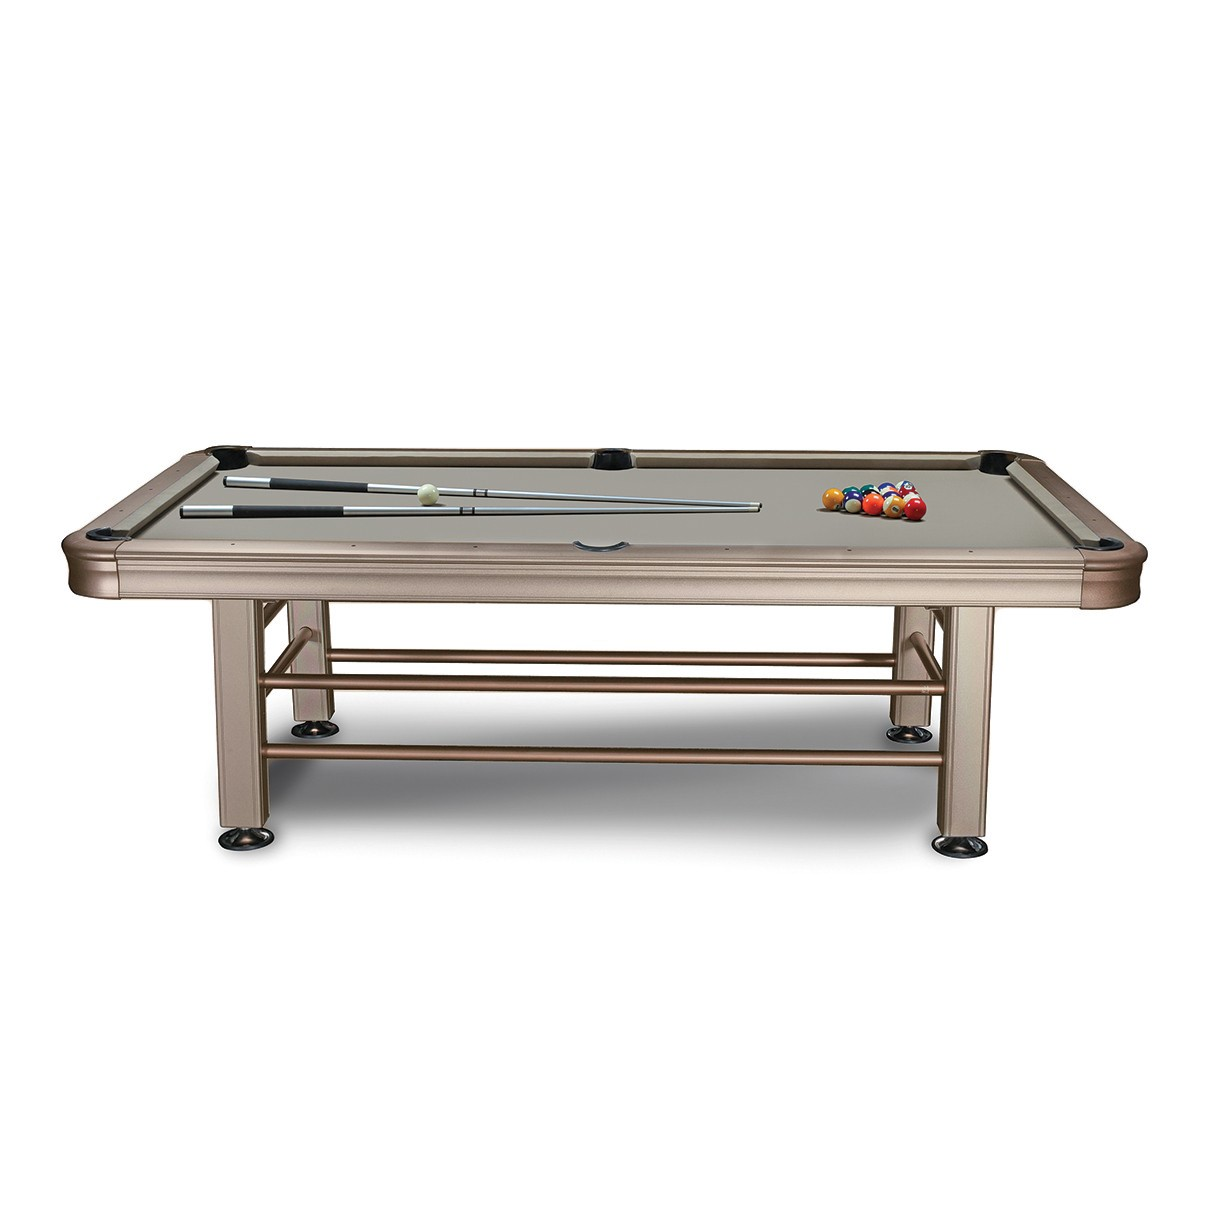 8 39 Imperial Outdoor Pool Table